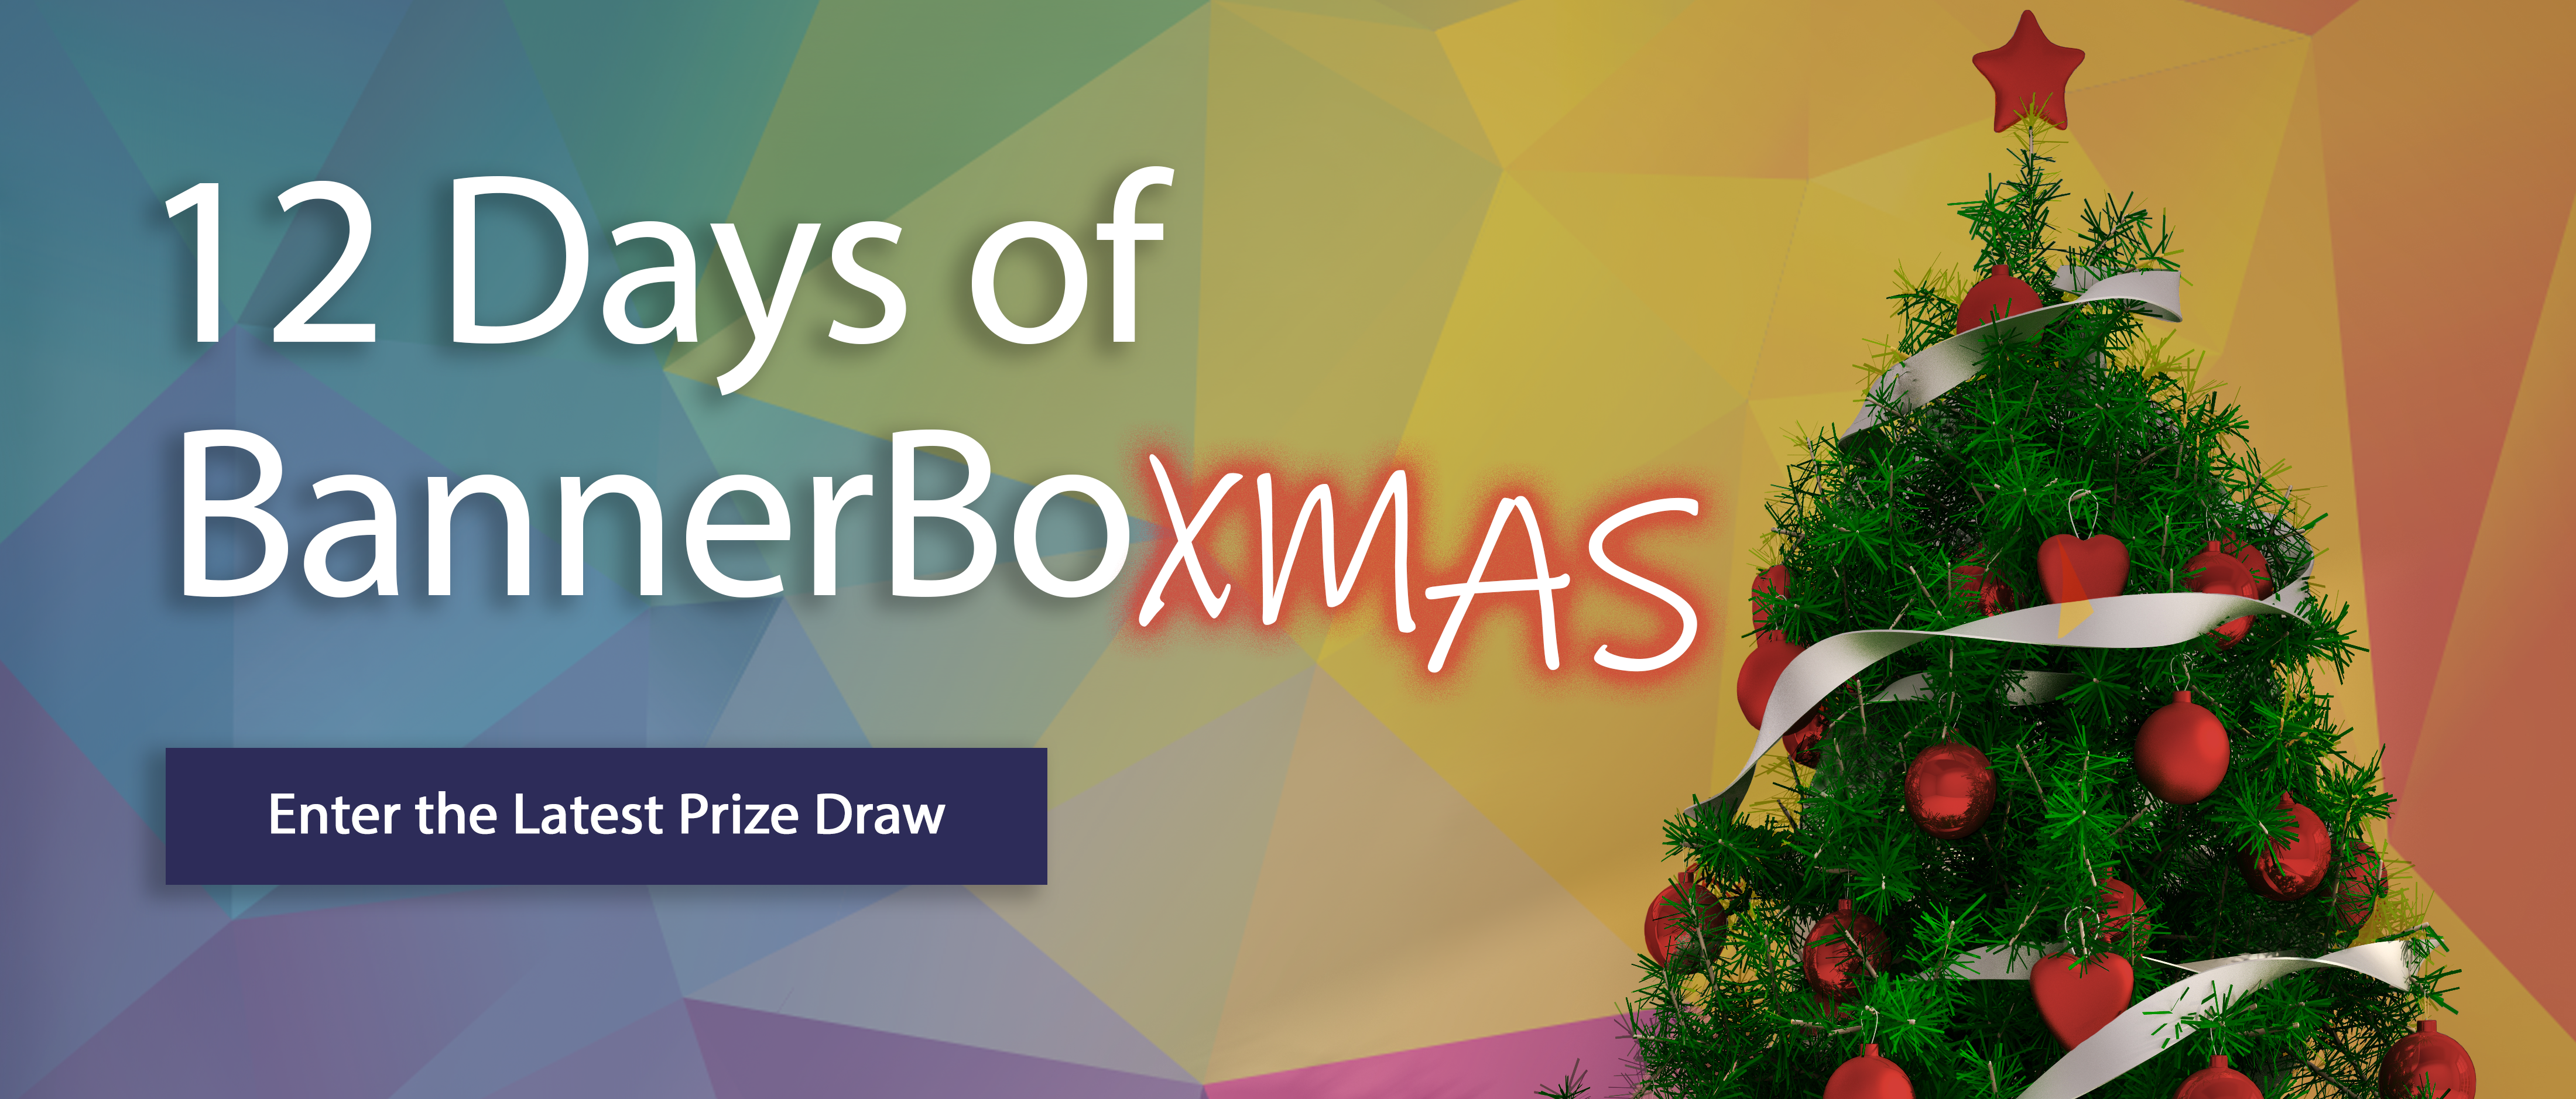 12 Days of BannerBoXMAS